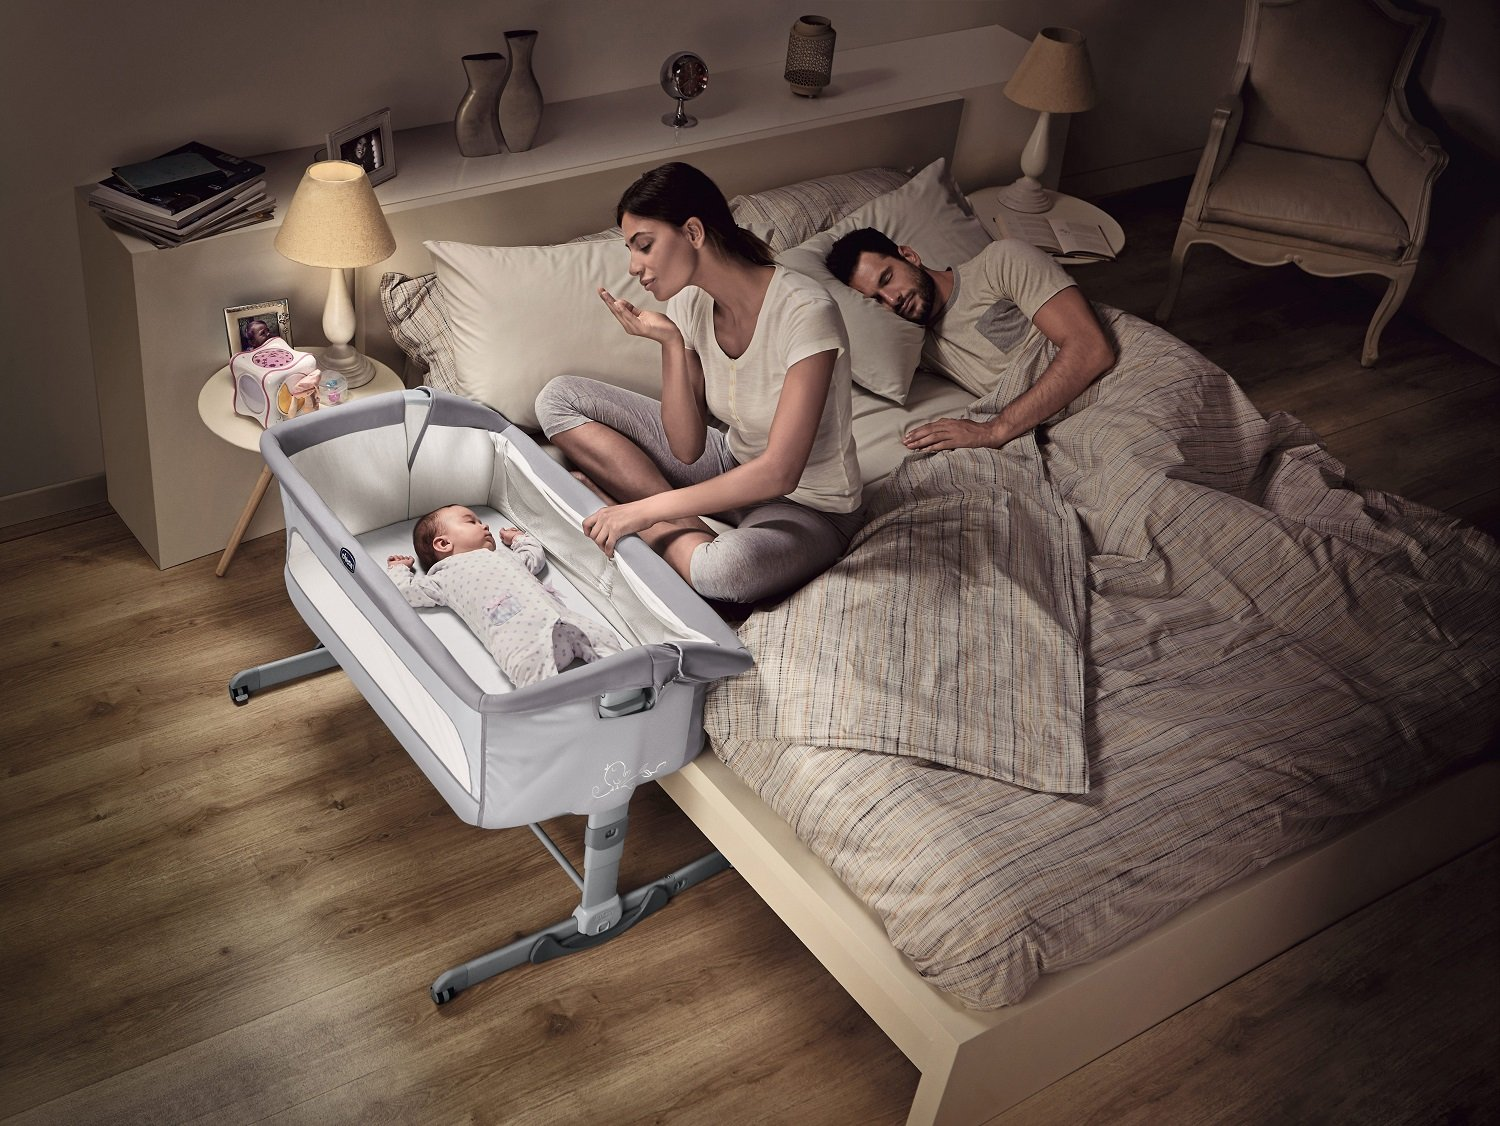 Chicco NEXT2ME Dream Crib - Graphite  The chicco next2me dream is the 3 in 1 solution and can be used as side-sleeping crib, as a stand-alone crib or as travel crib. Allows baby to sleep in your room for the first six months. 1-hand opening mechanism to easily change from side-sleeping to stand-alone configuration 6